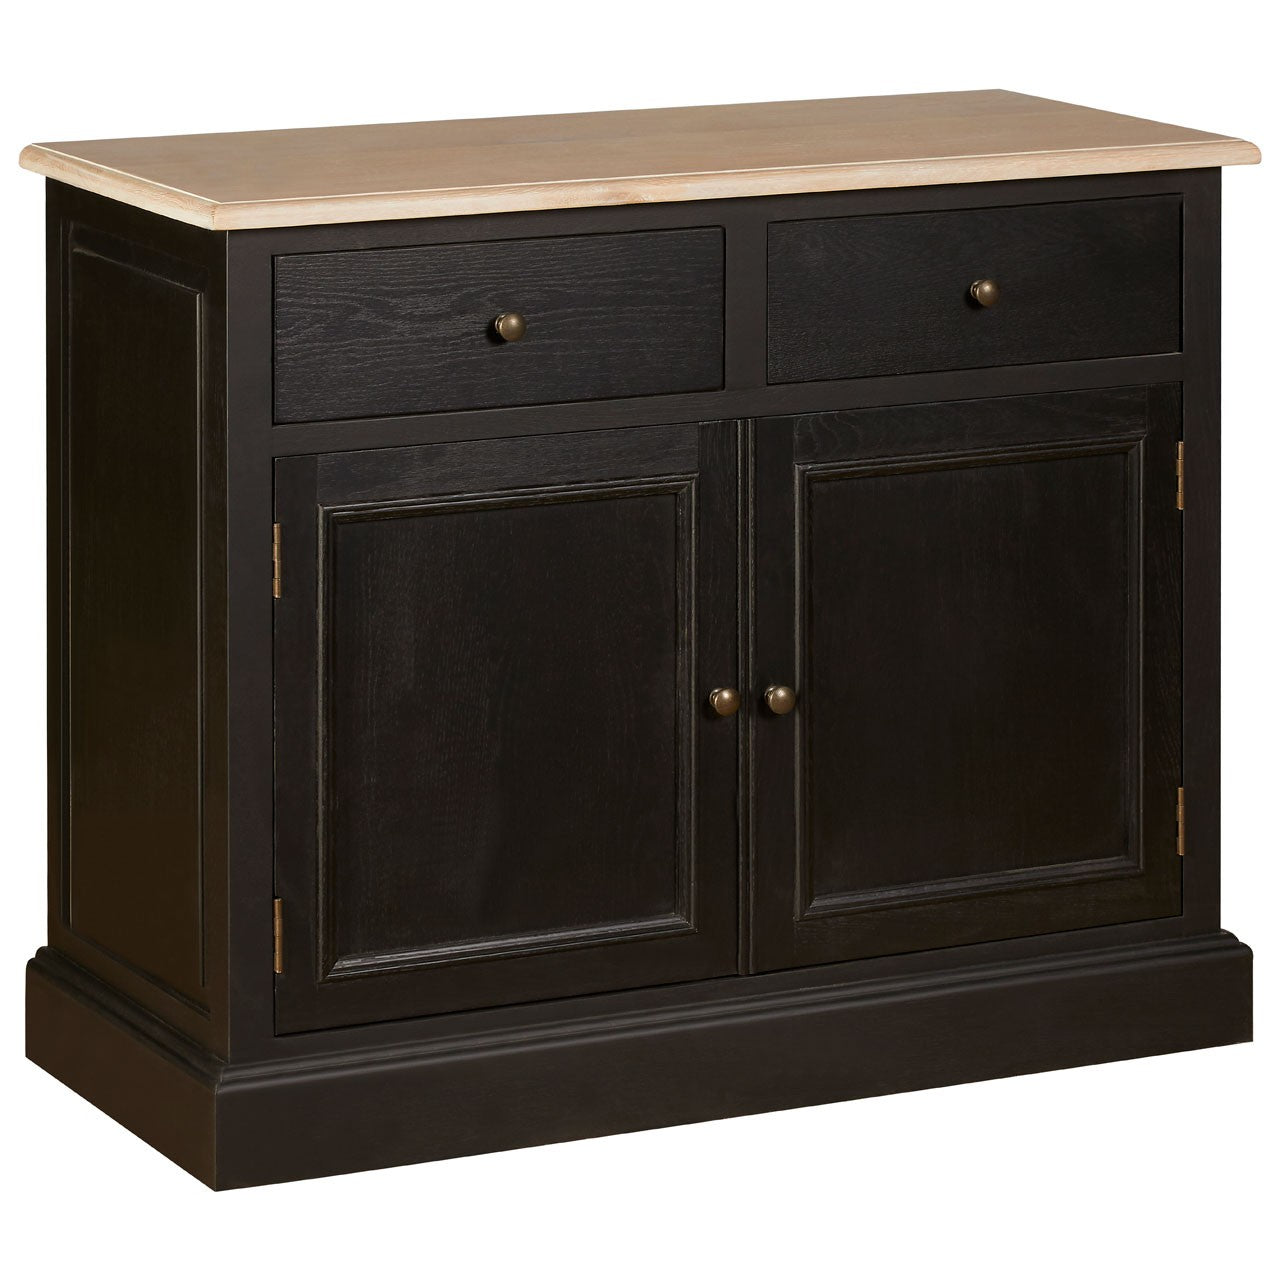 Lyon 2 Drawer Sideboard